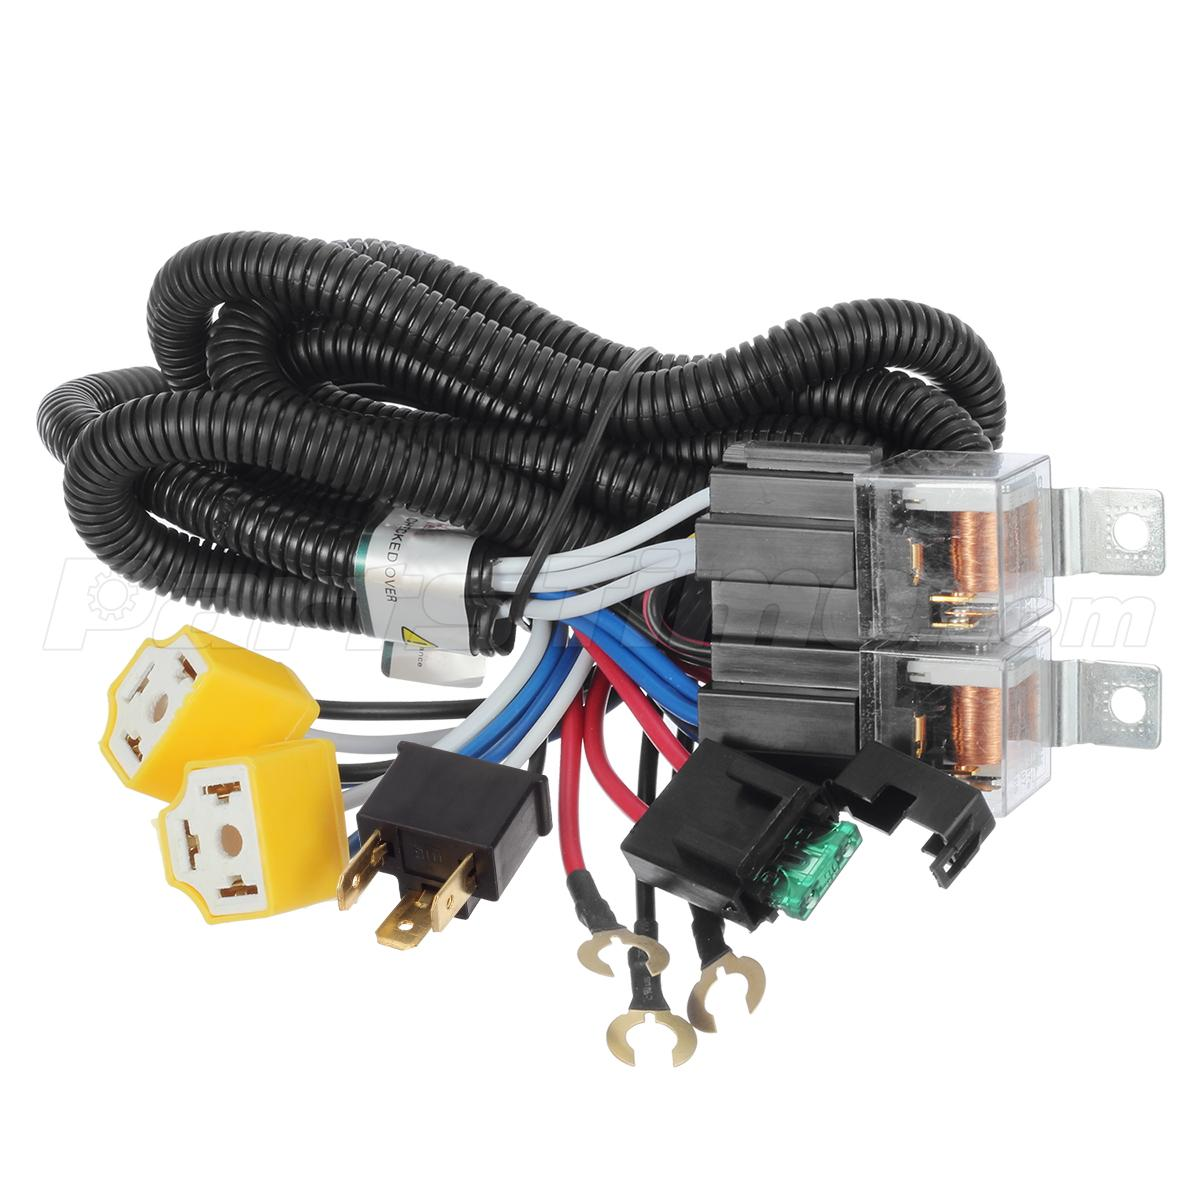 hight resolution of conversion kit wiring diagram on h4 led headlight bulb wiring h4 headlight relay wiring harness 2